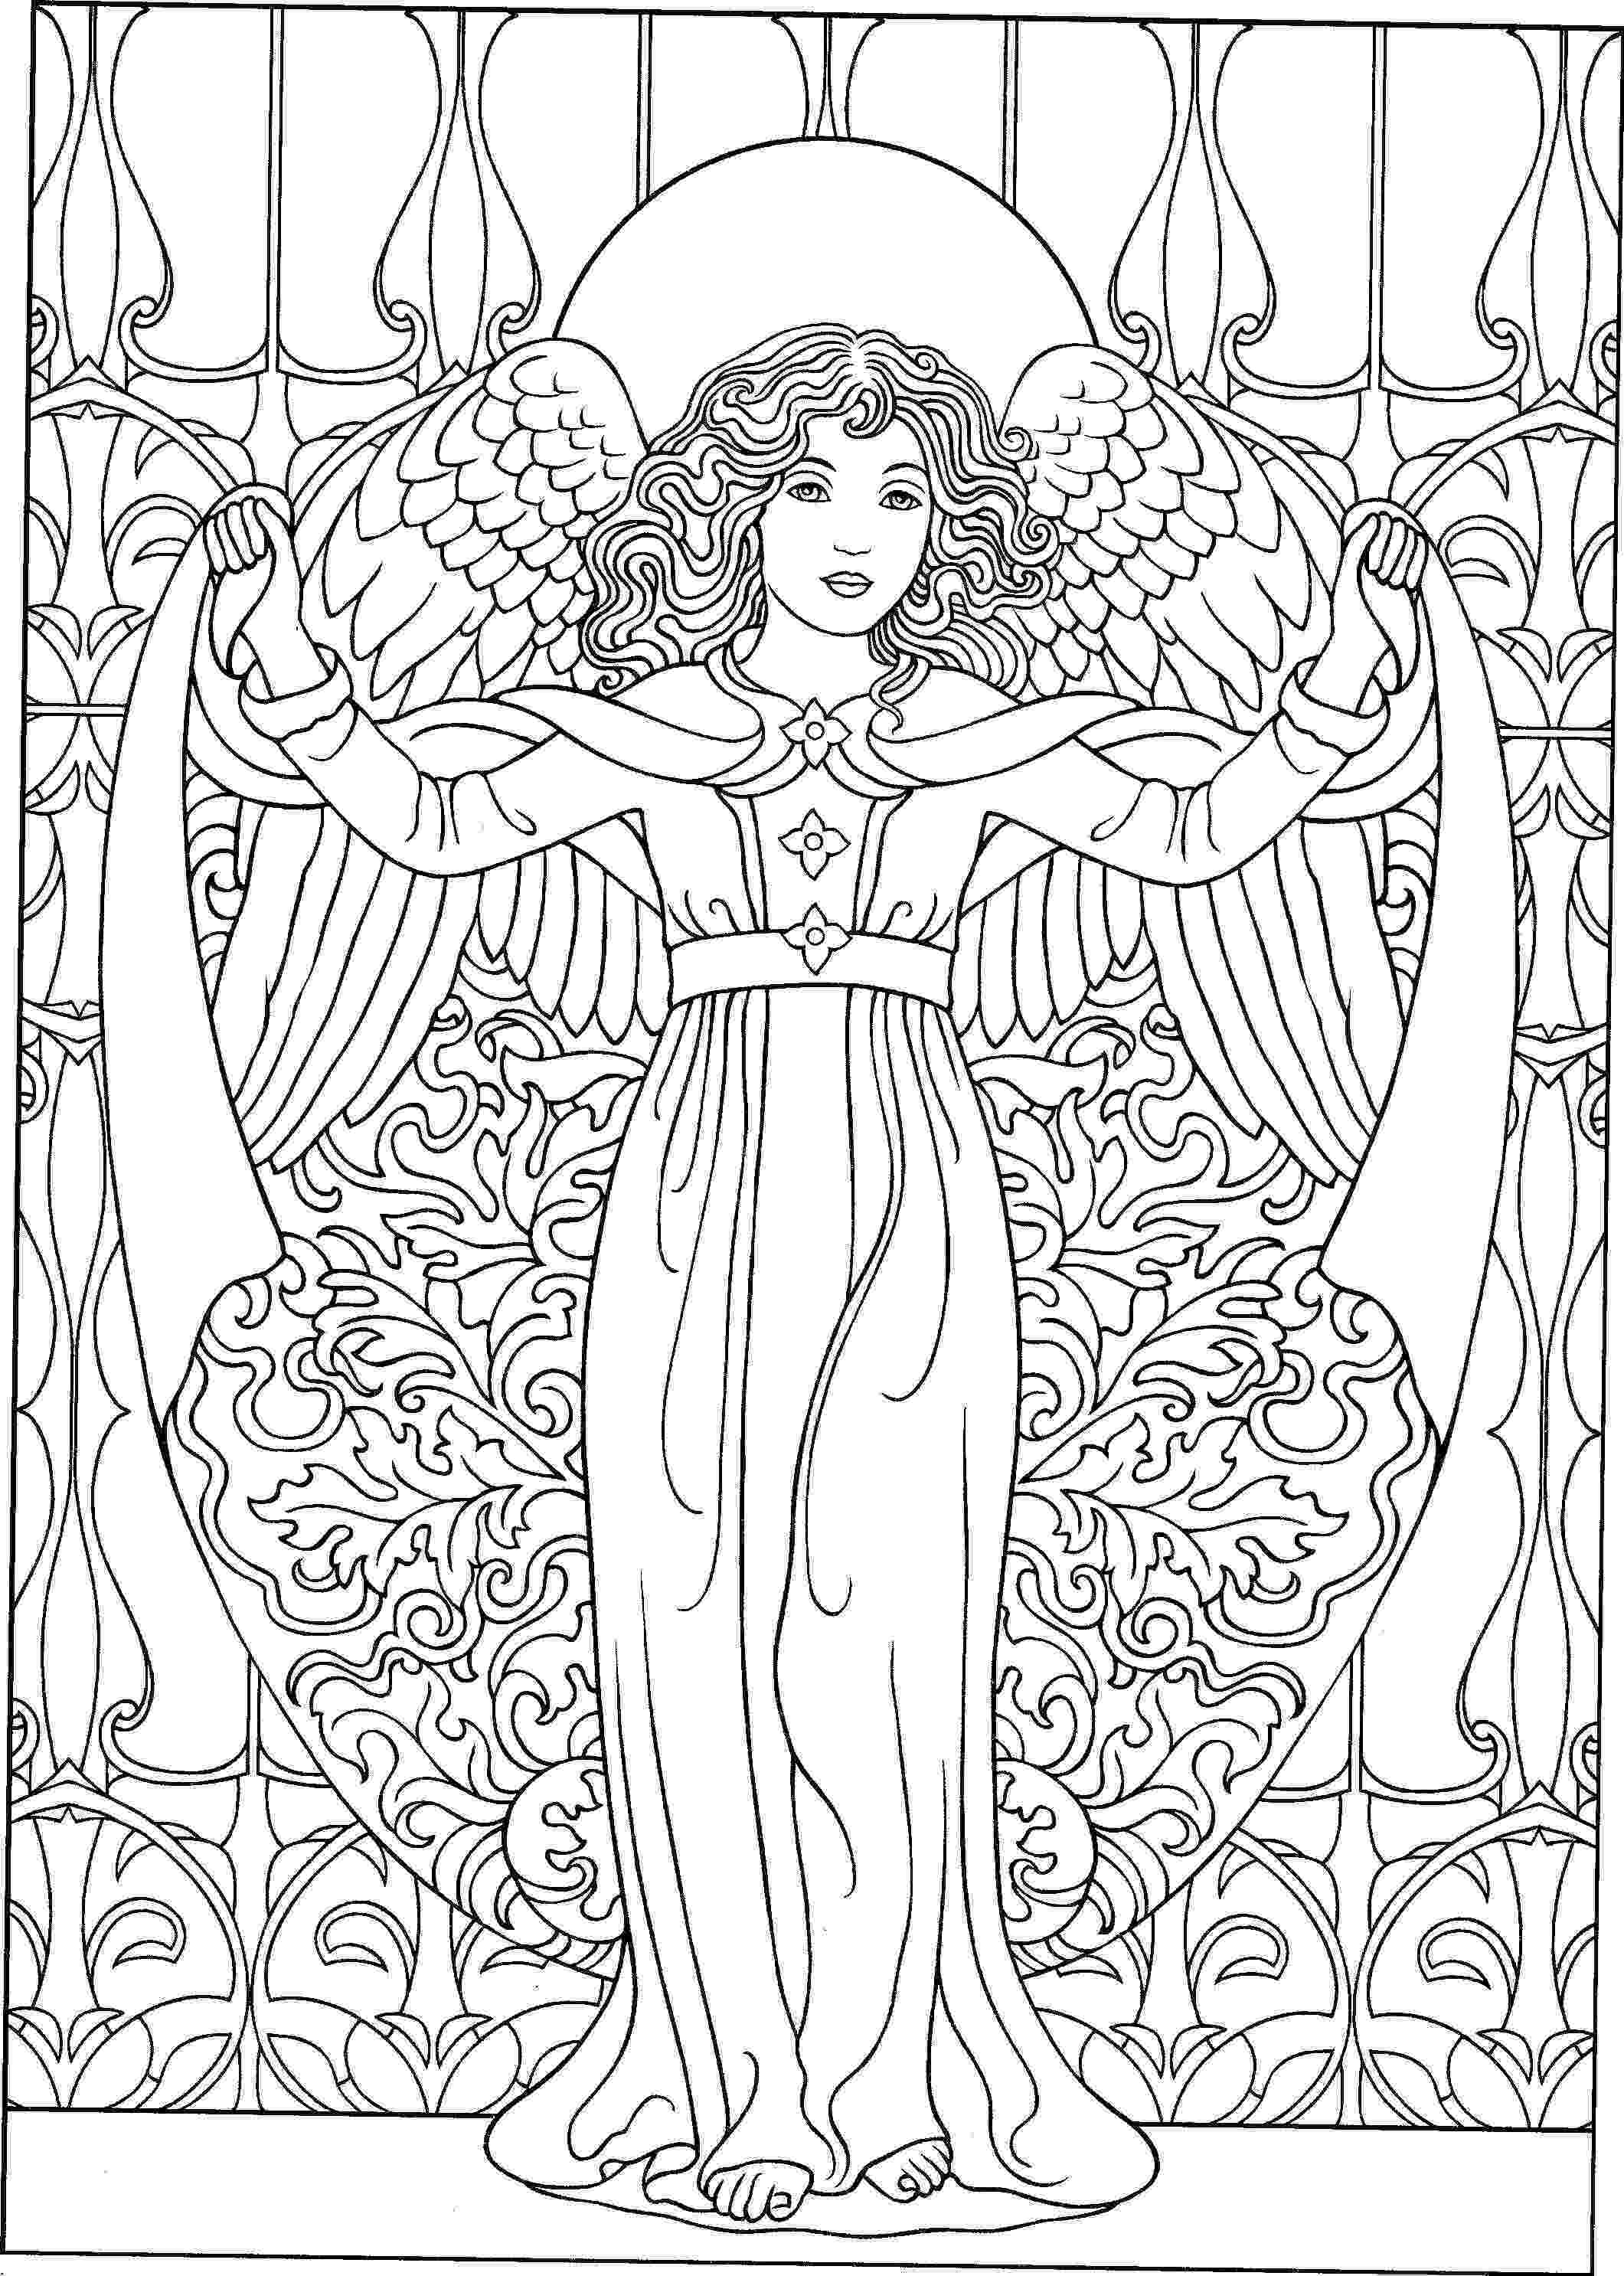 coloring pages of angels beautiful angel coloring page free printable coloring pages coloring of pages angels